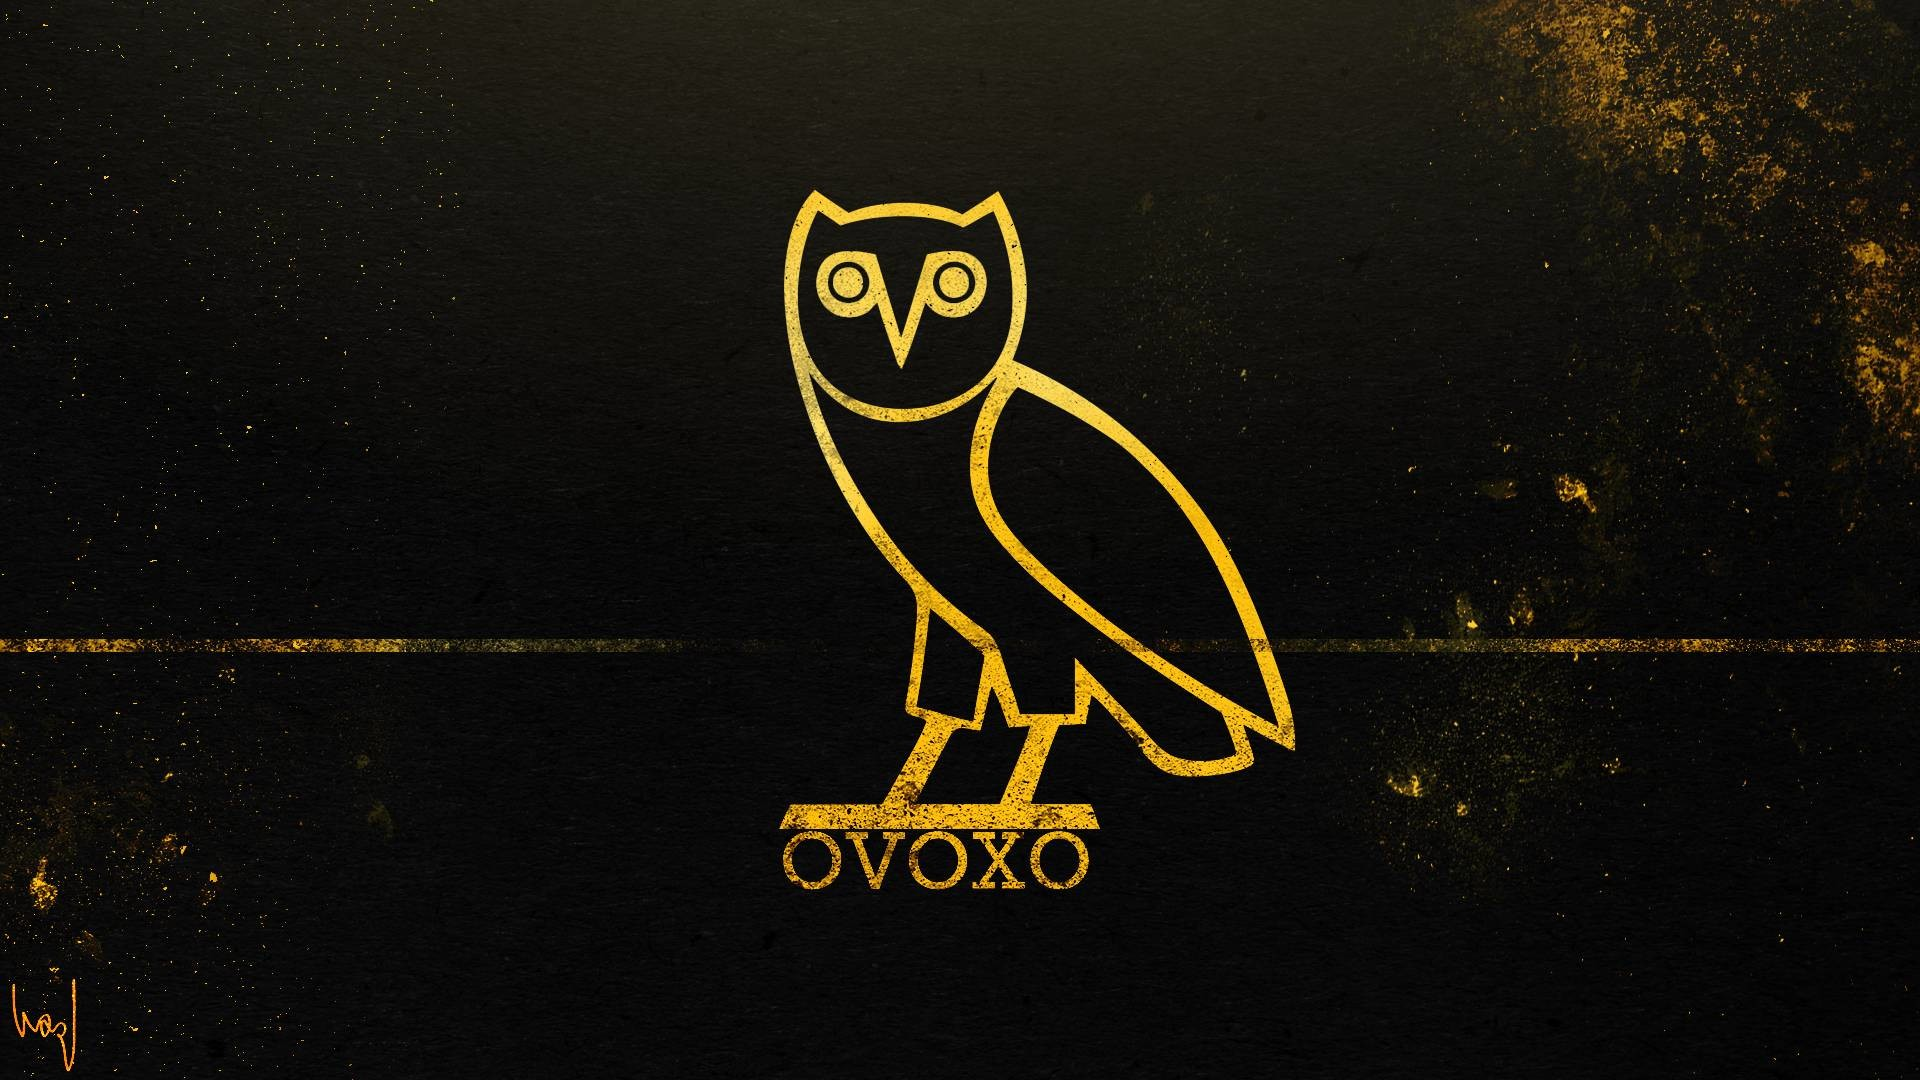 Drake Iphone Wallpaper Ovo cool wallpaper, ovoxo